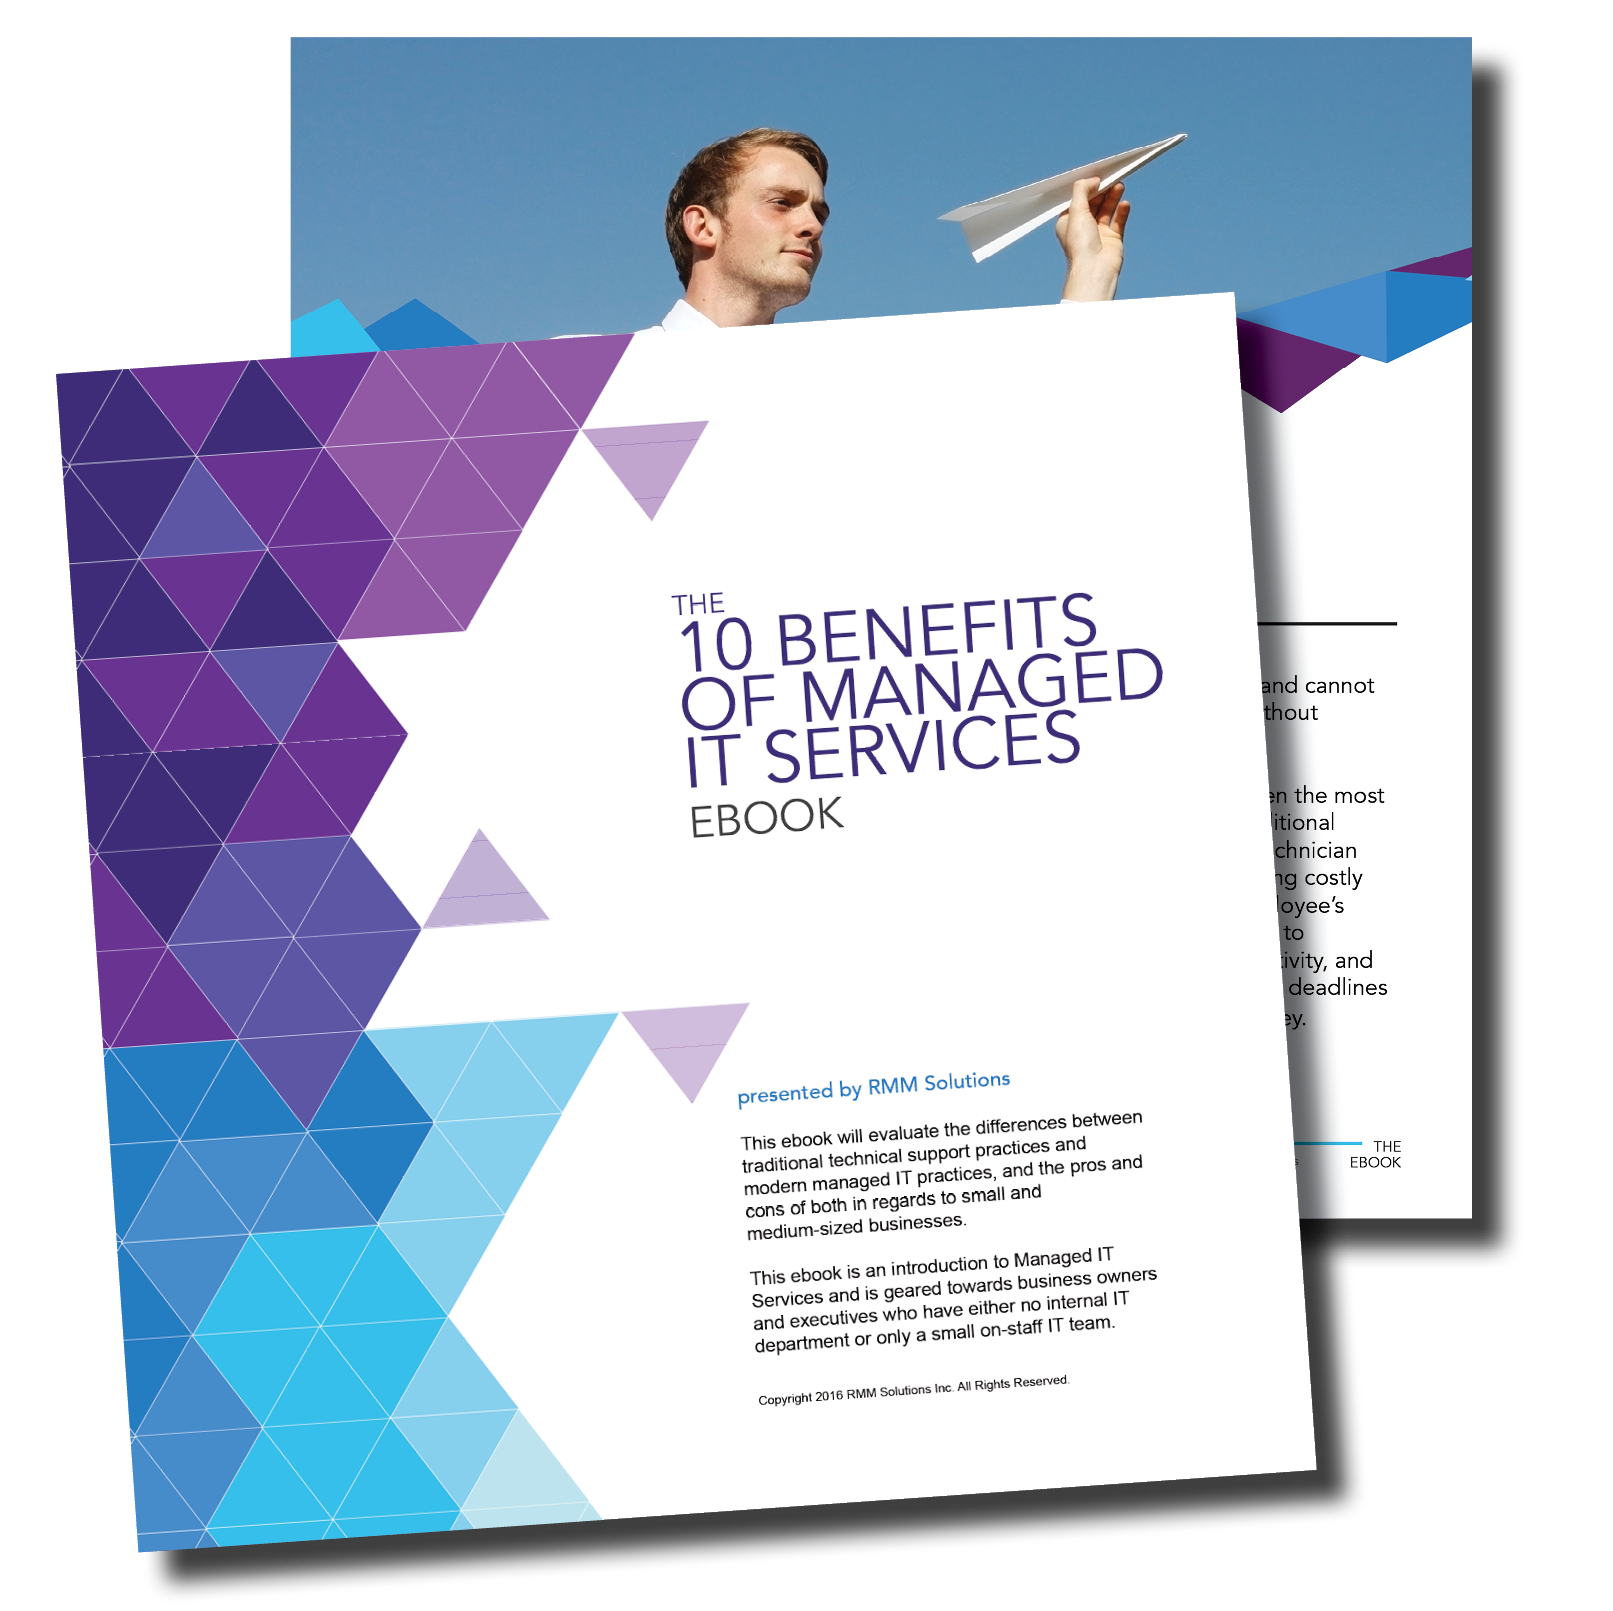 Managed_Services_White_Paper_10_Benefits_Cover.png